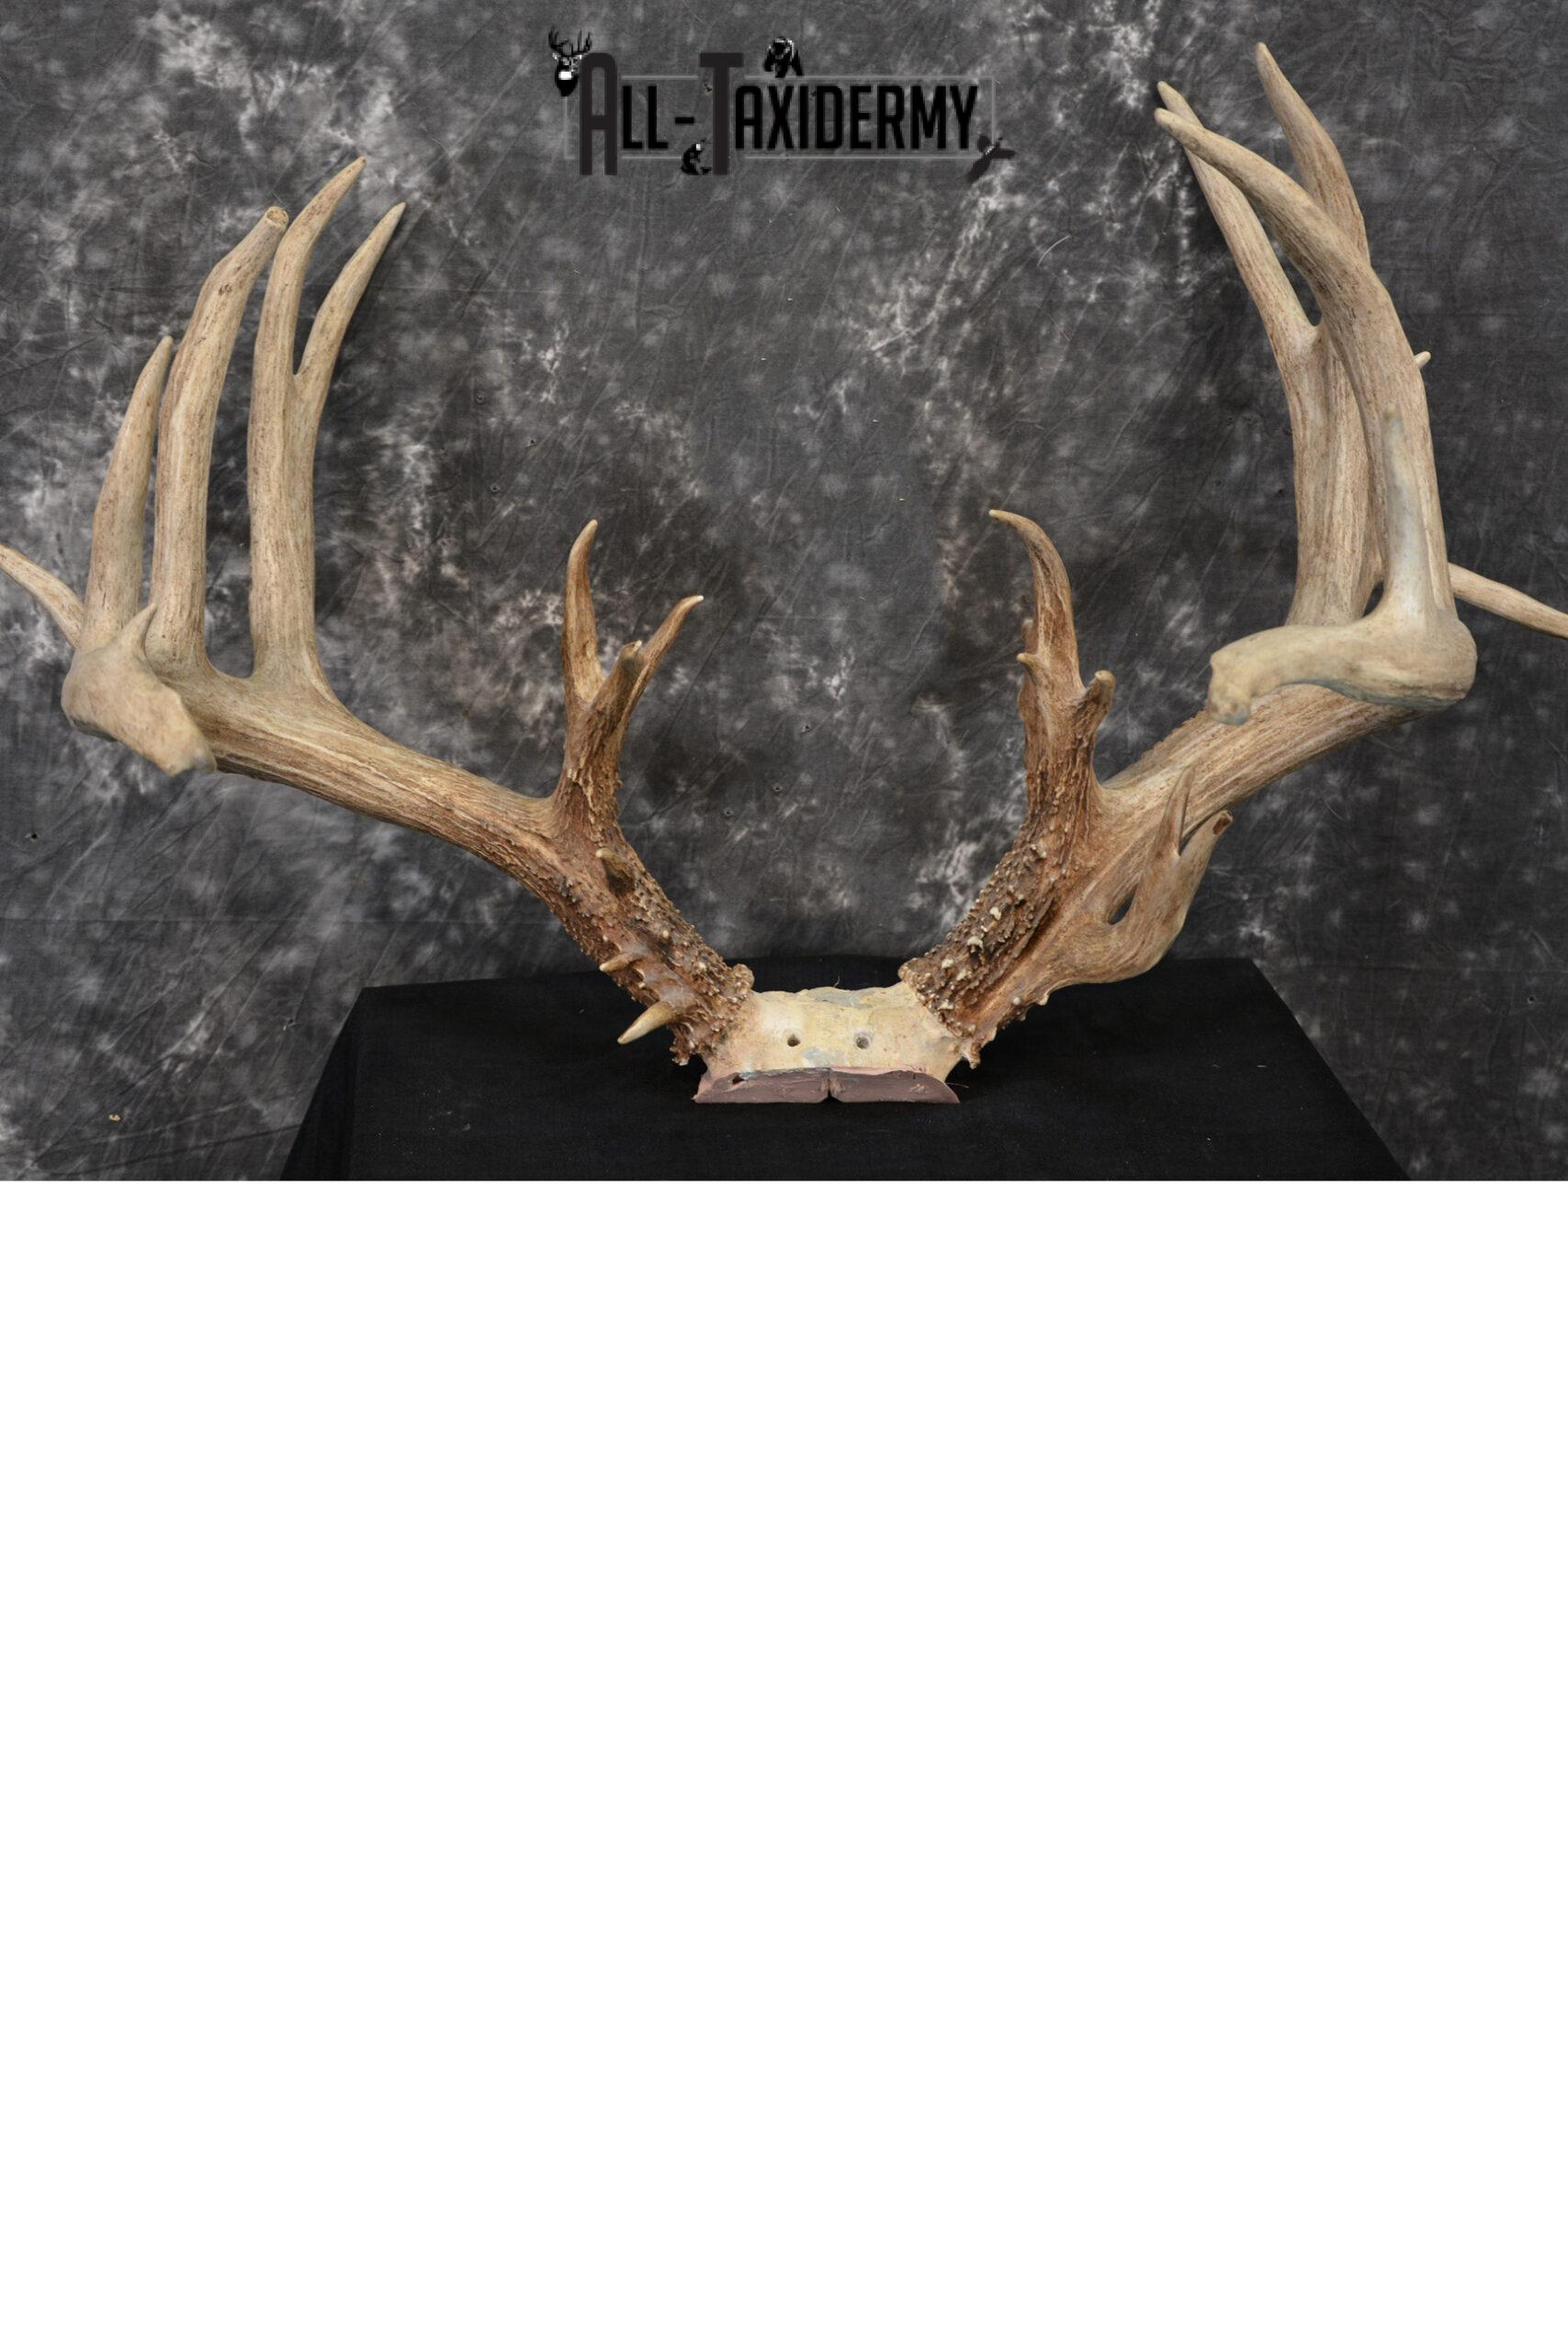 Whitetail Wild Taxidermy Skull Plate Trophy Score 242 5/8 SKU 1072